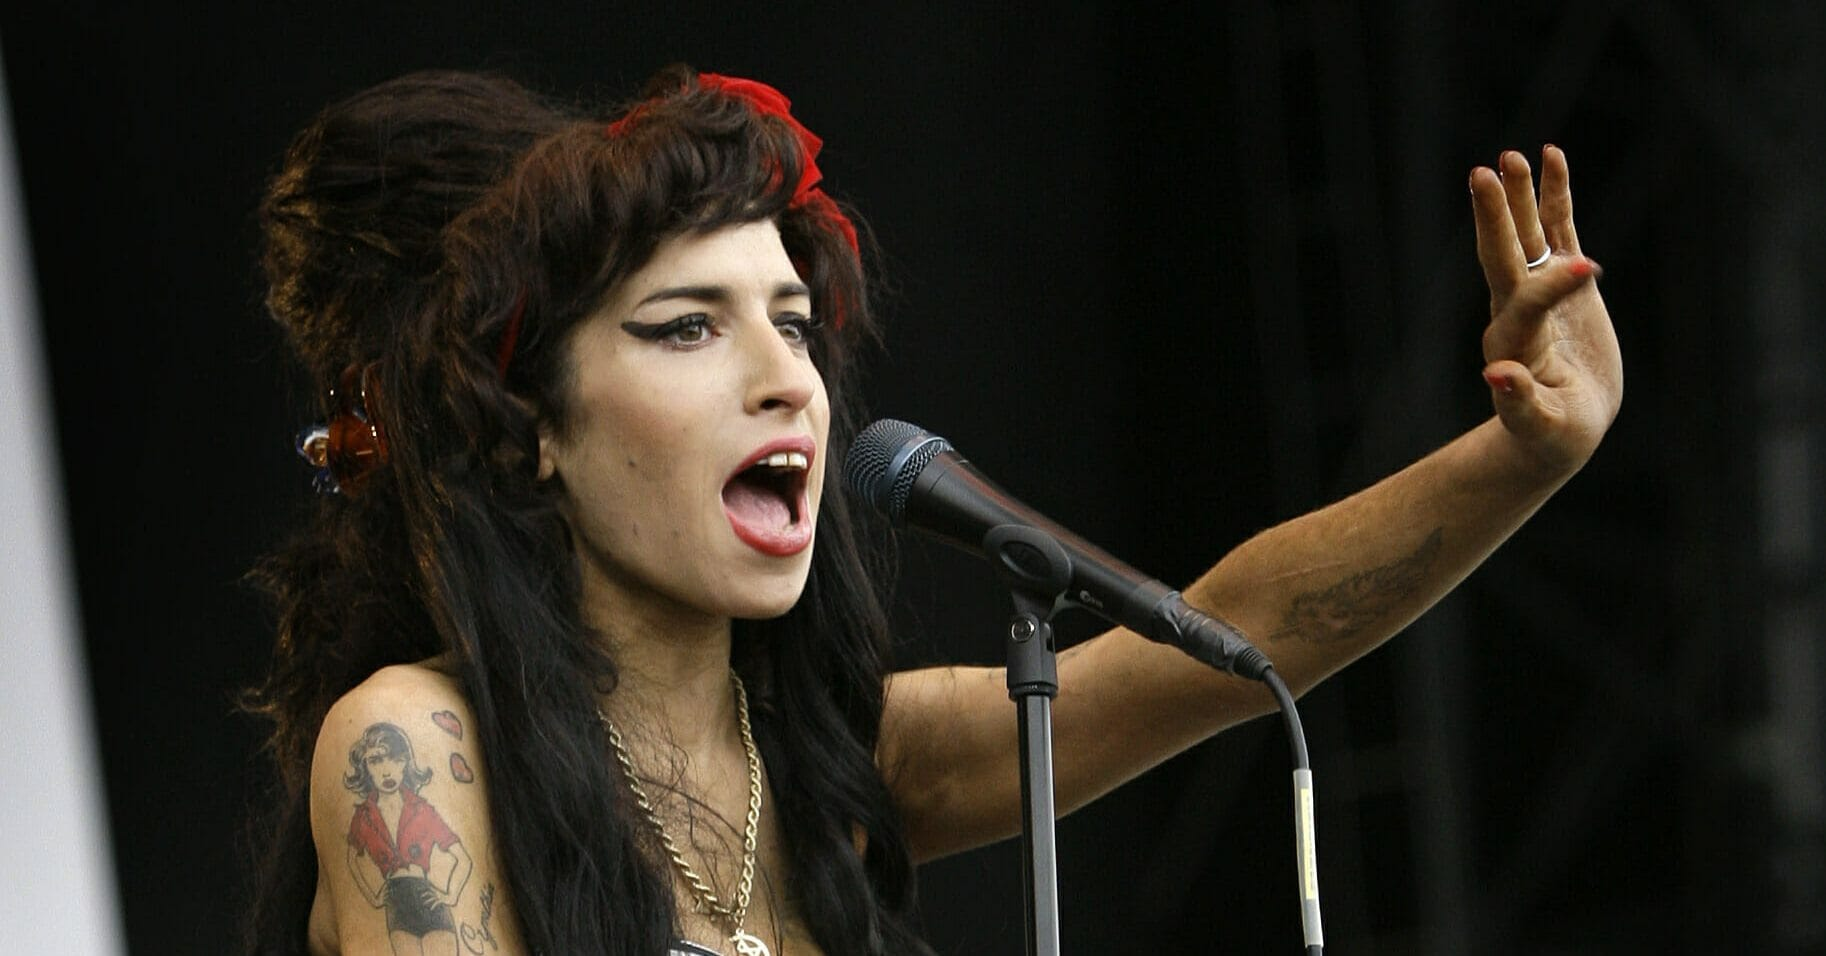 Amy Winehouse performs at the V Festival in Chelmsford, Essex in England on Aug. 17, 2008.